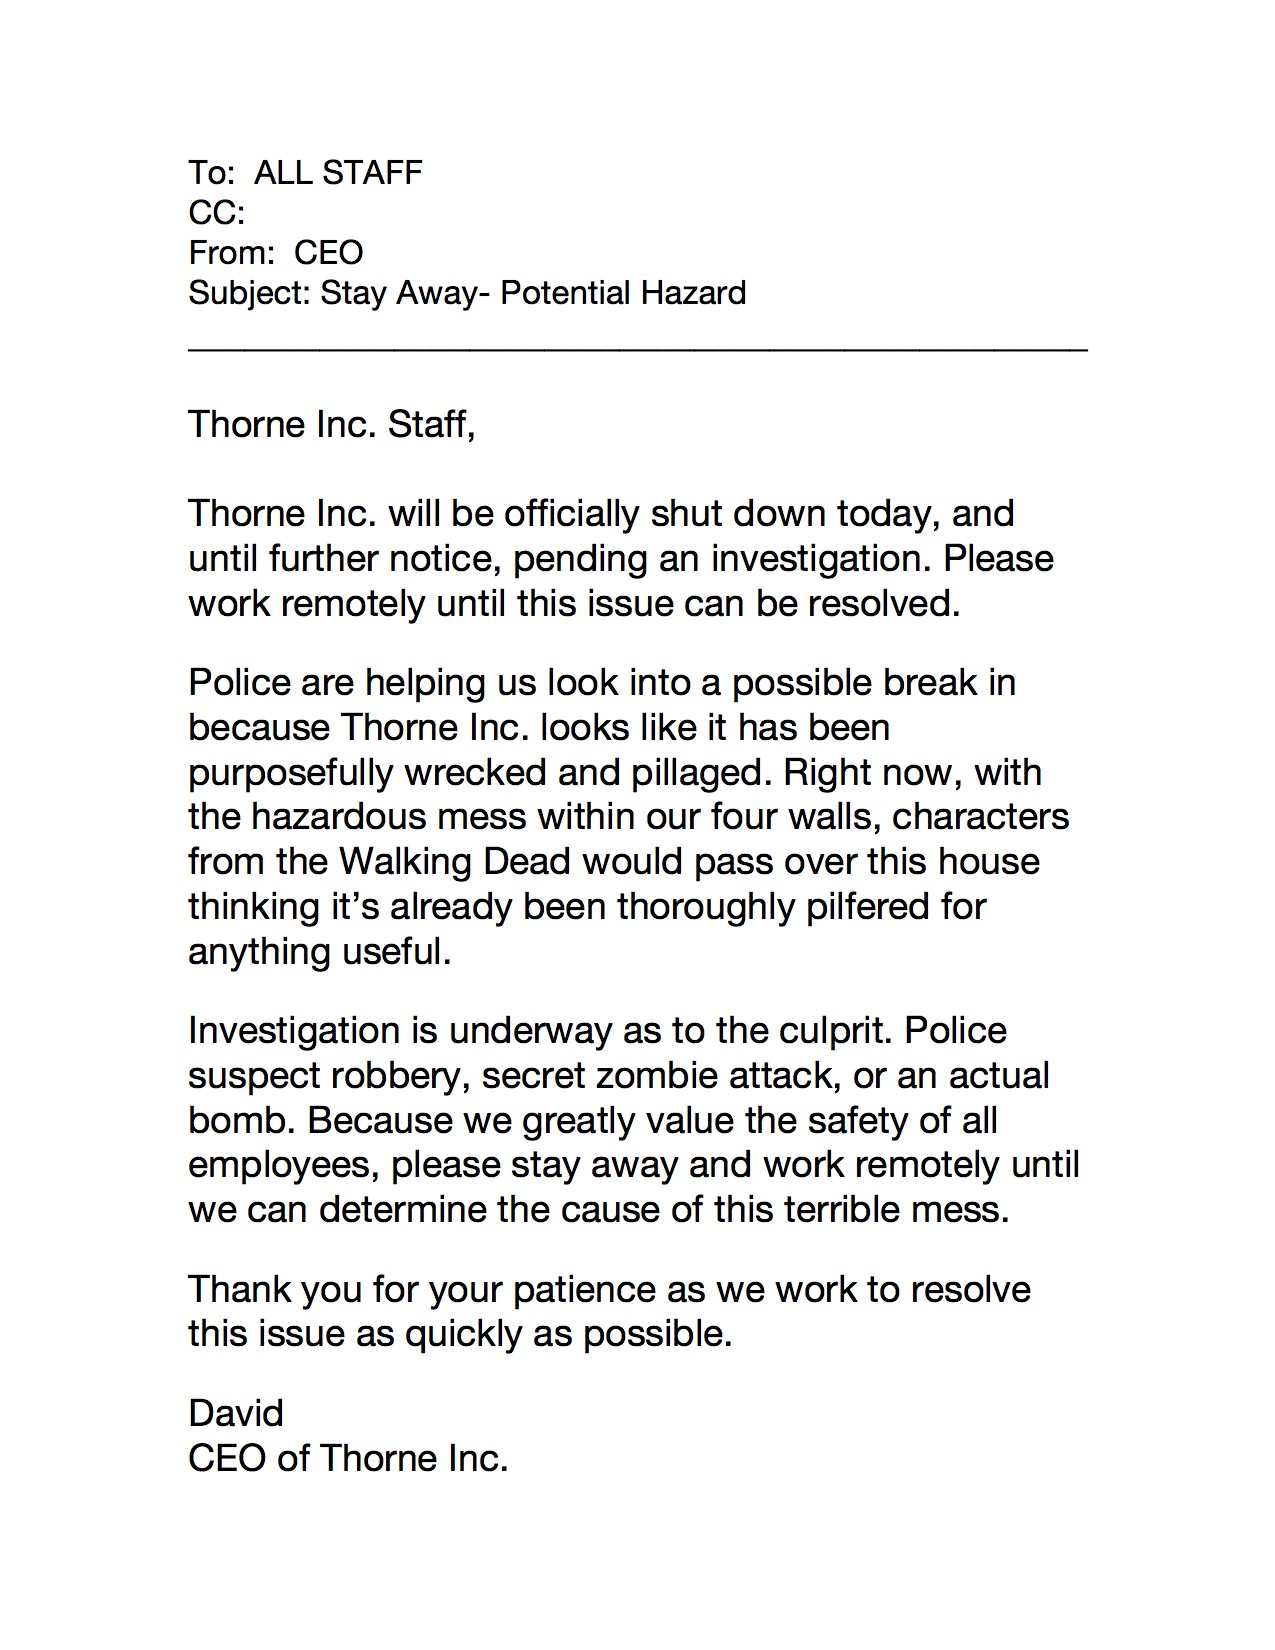 House Destroyed Email copy